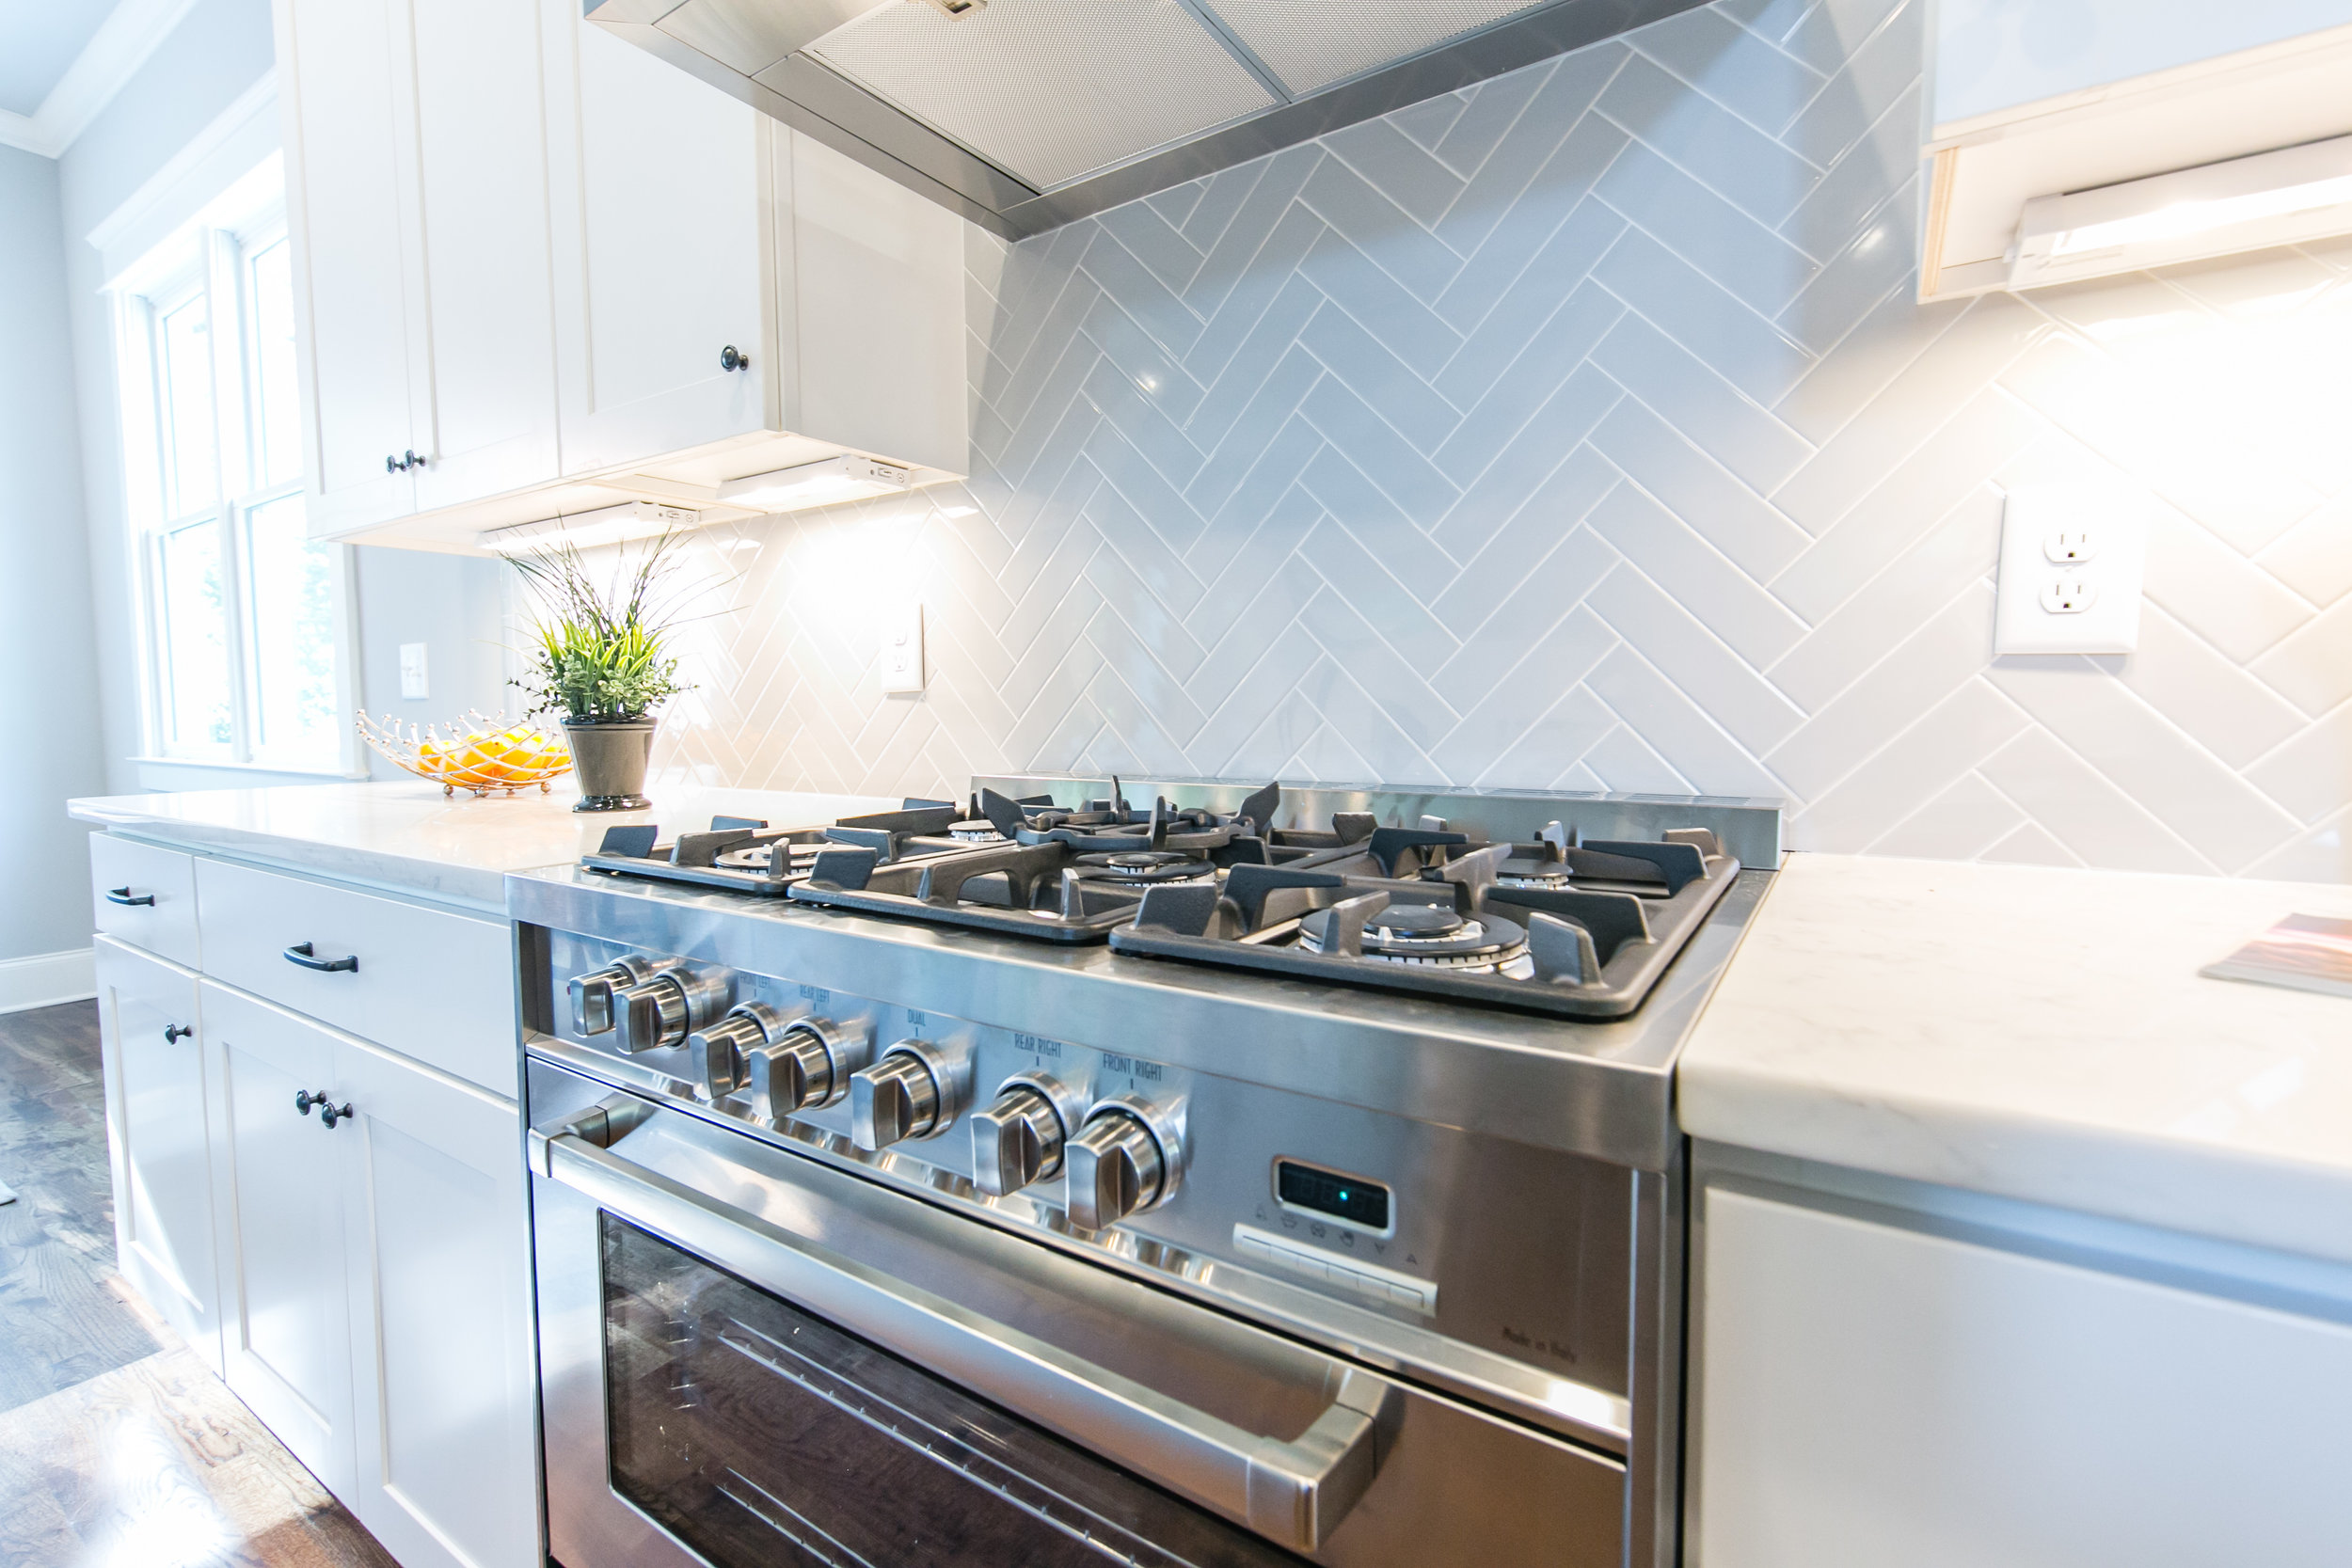 817 3rd Ave-Stove.jpg